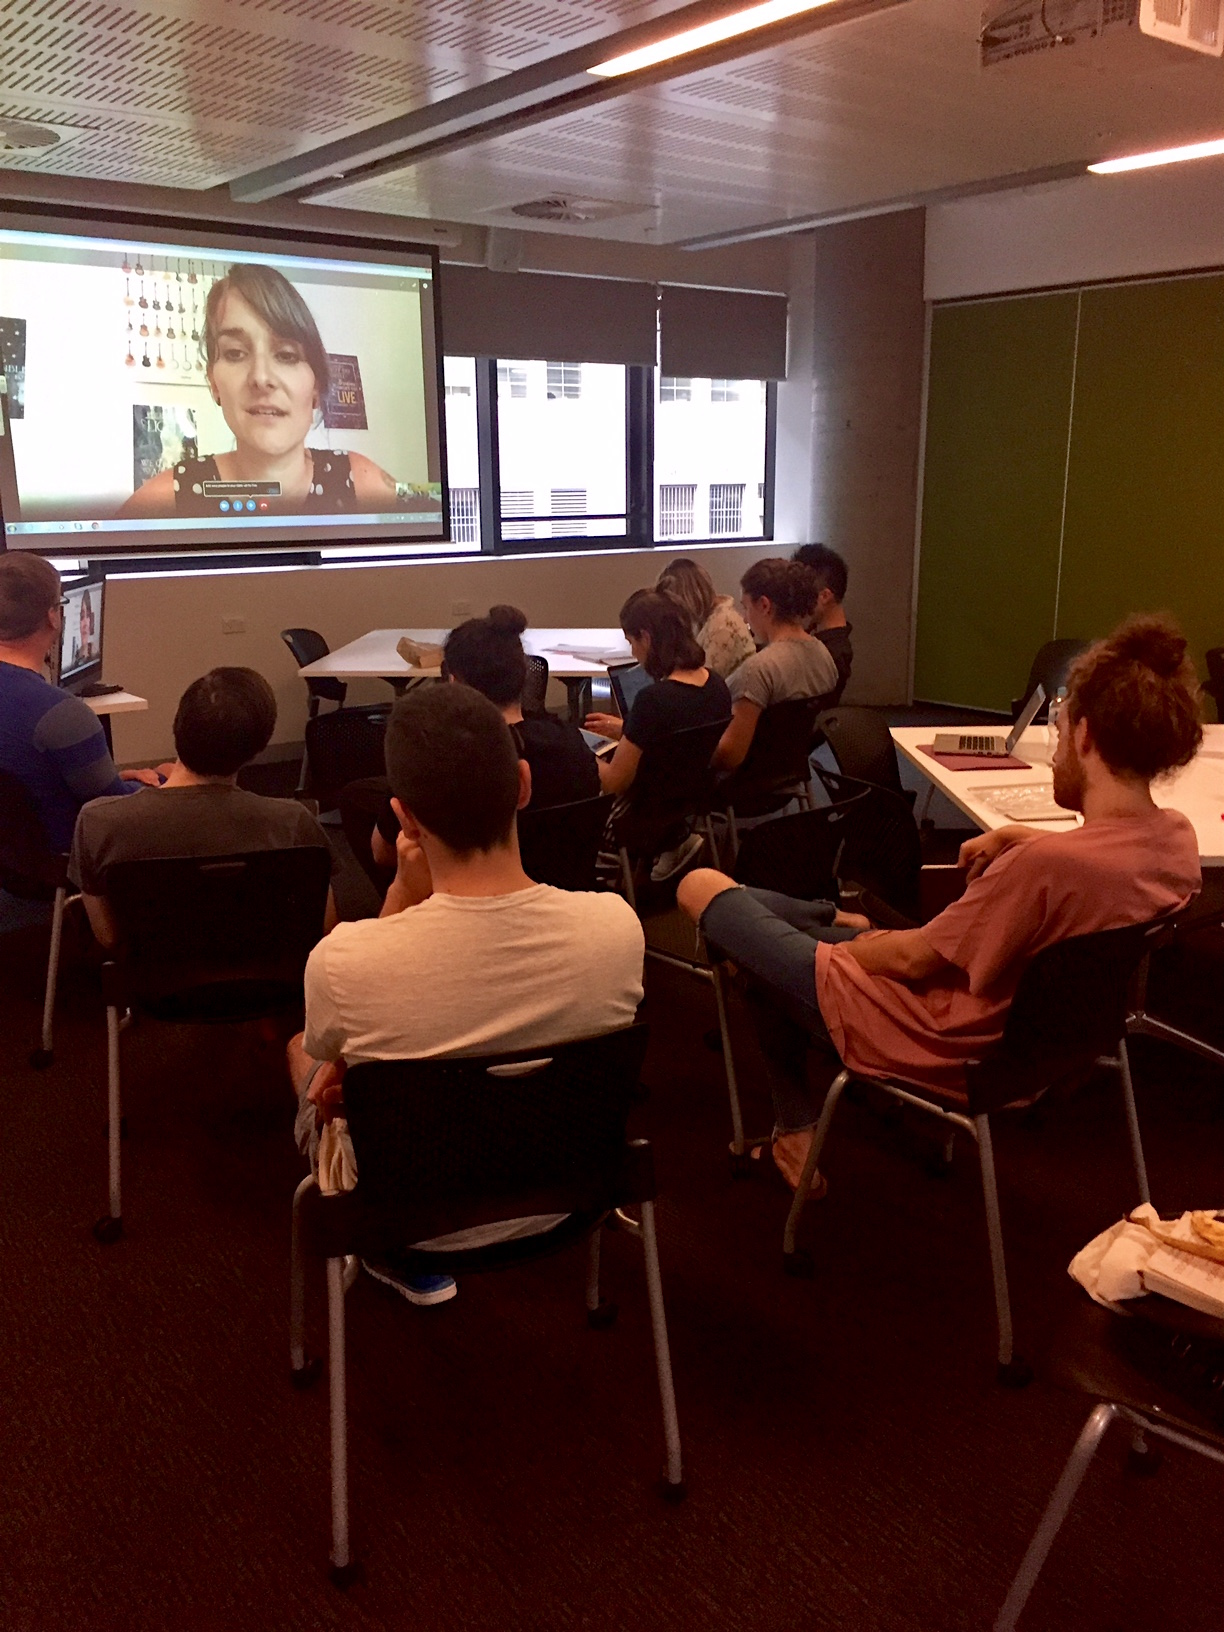 A classroom full of students watching a teacher on Skype.